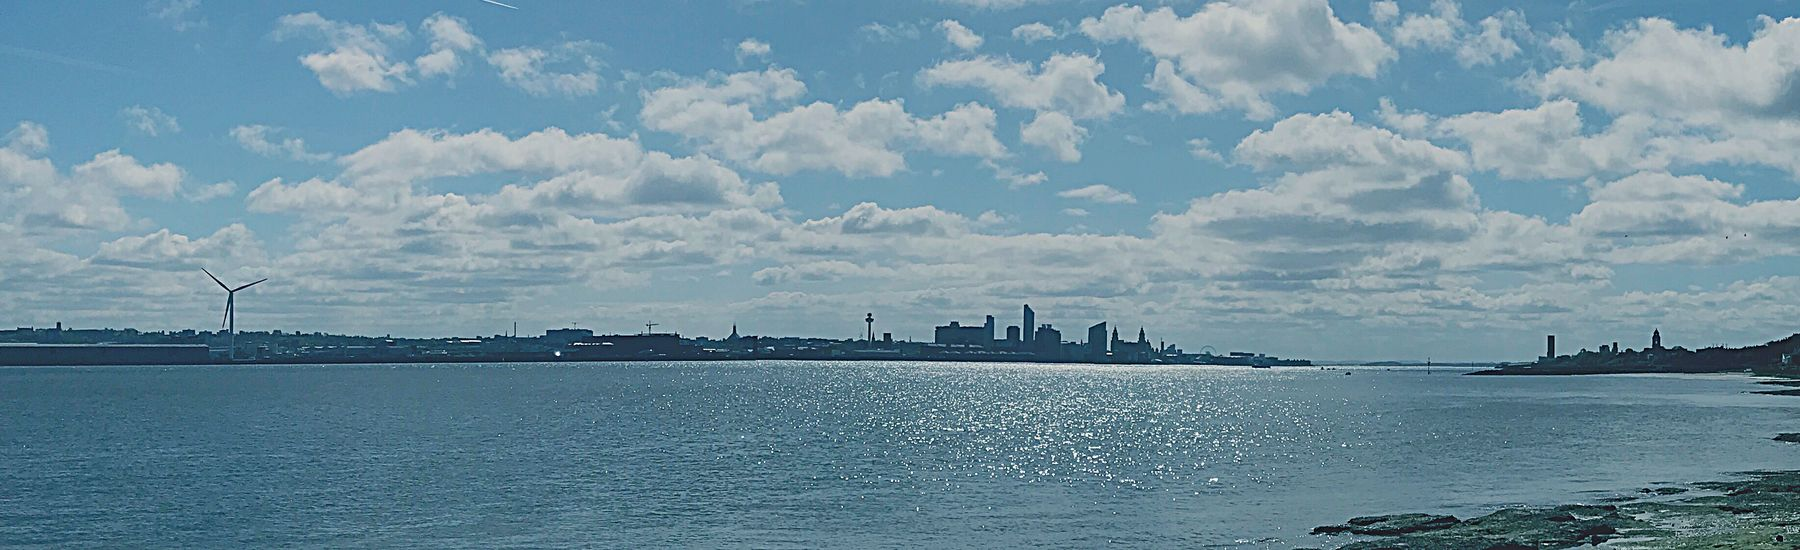 My City Liverpool Panaromic View Love This Place